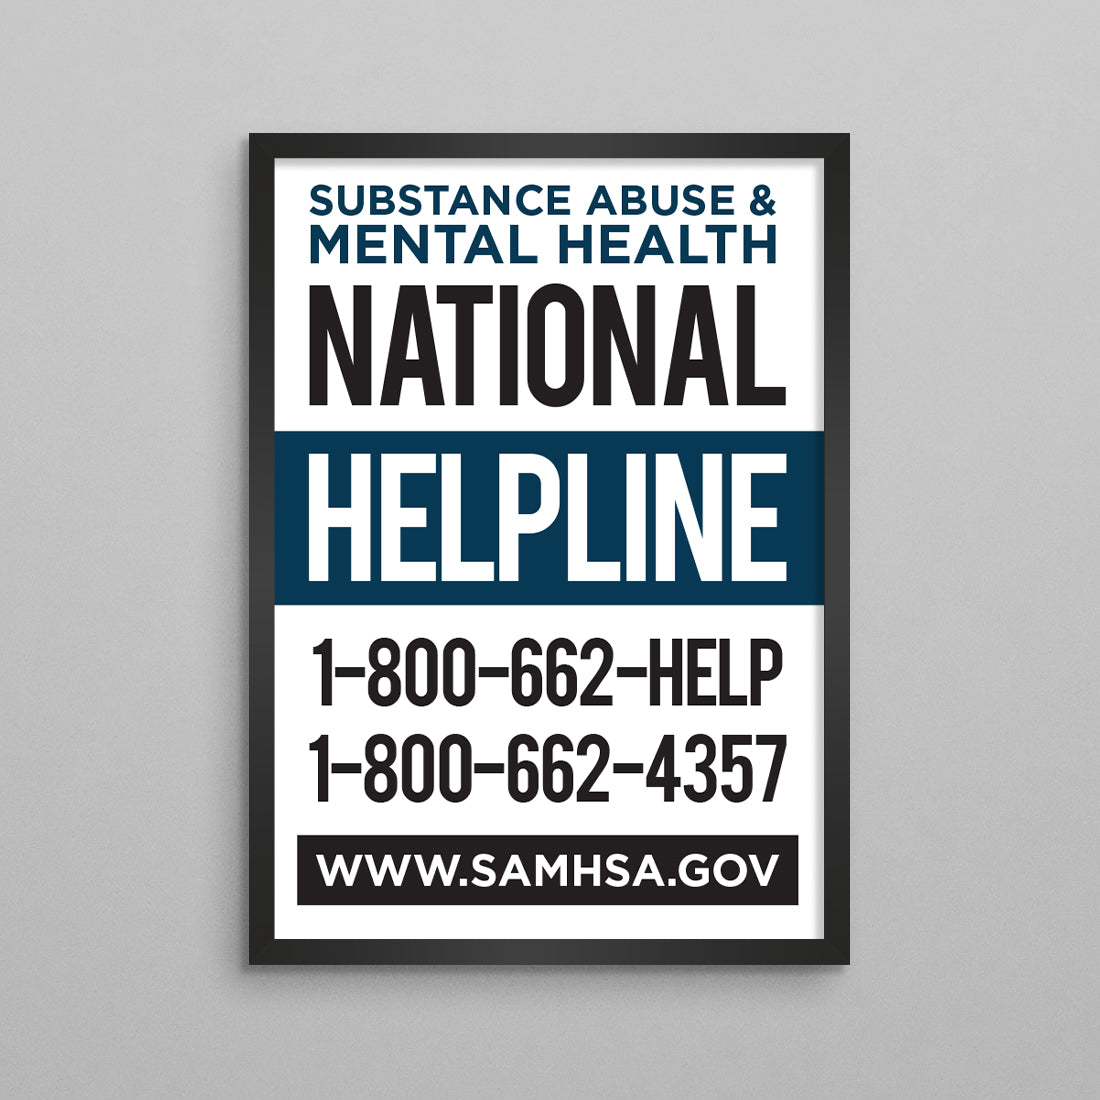 Substance Abuse & Mental Health National Helpline Poster